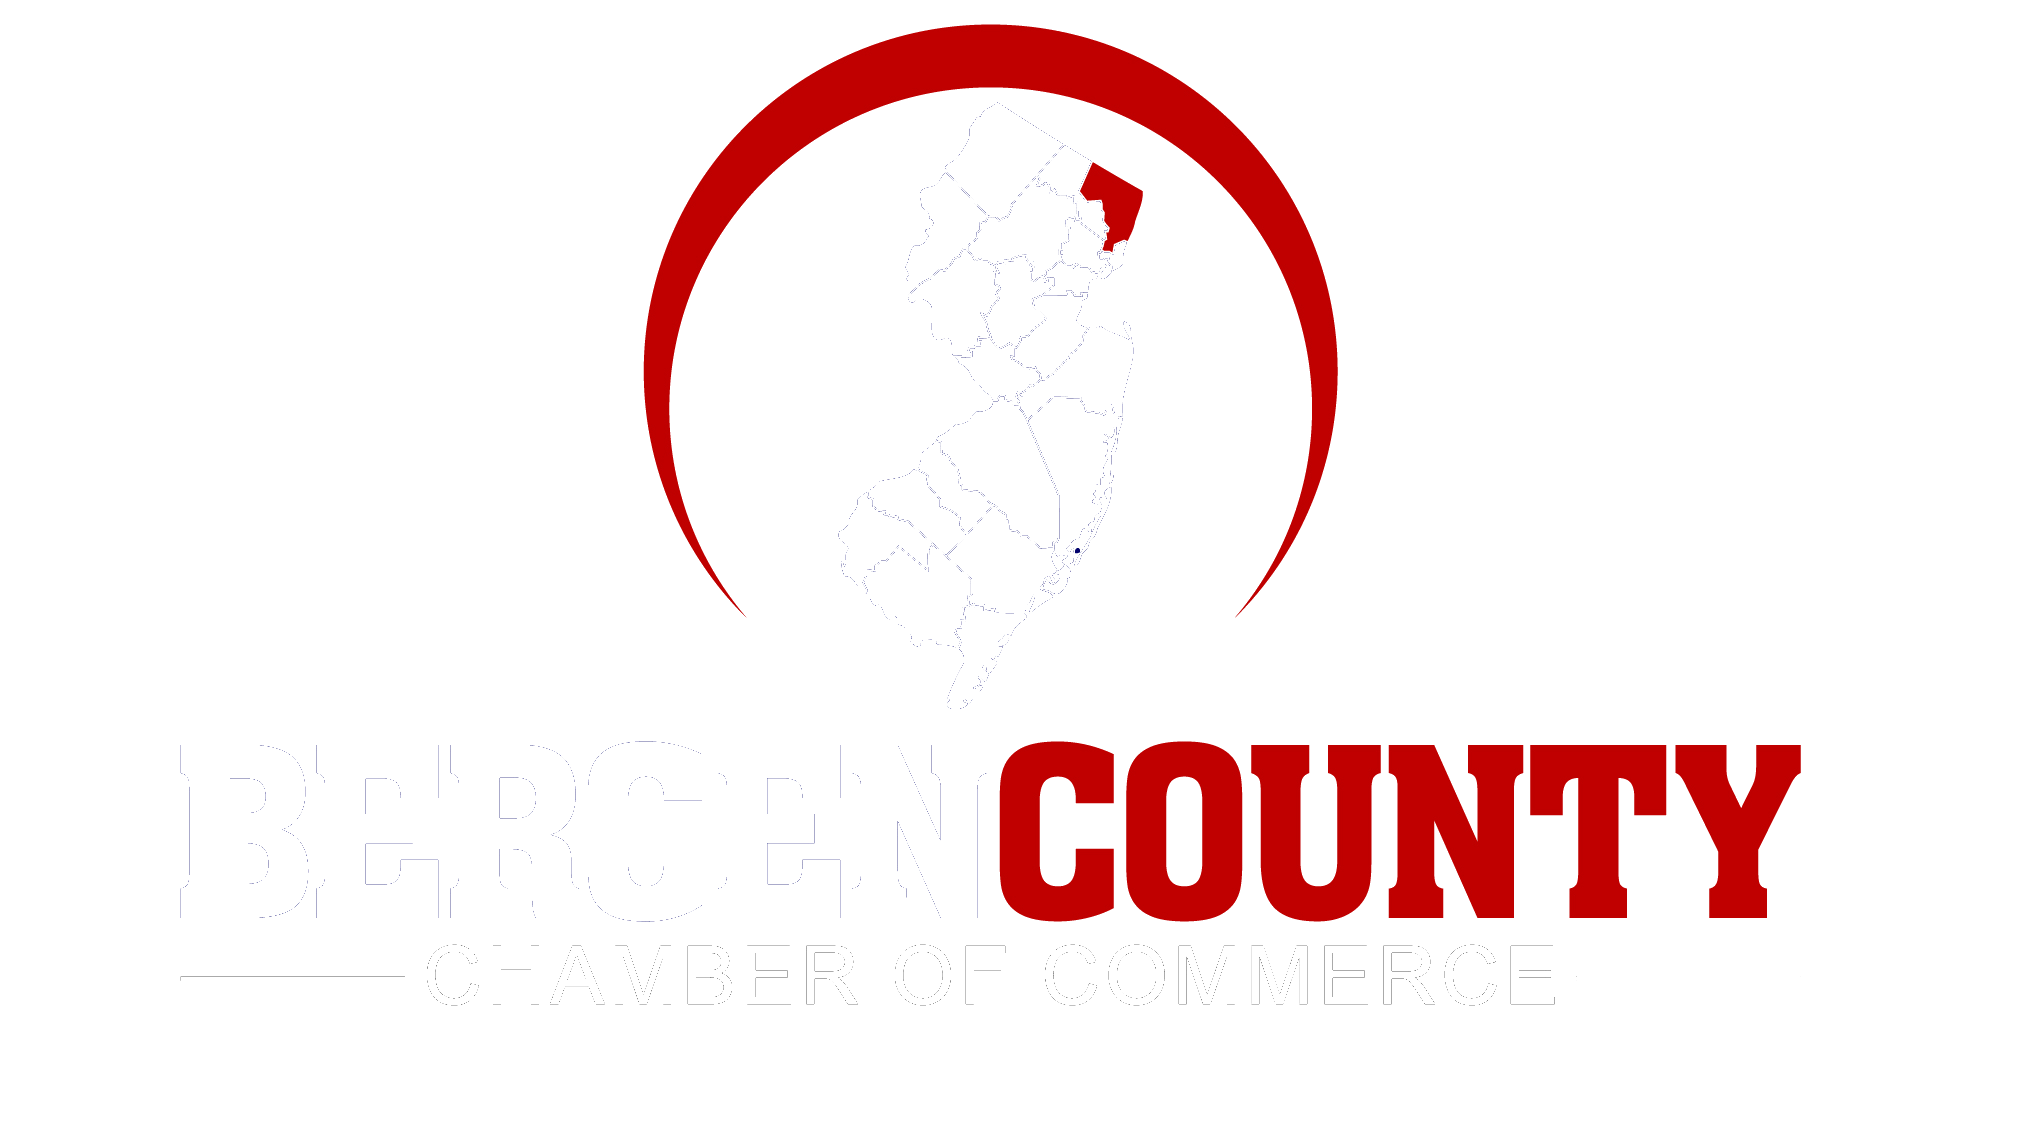 Bergen County Chamber of Commerce Logo